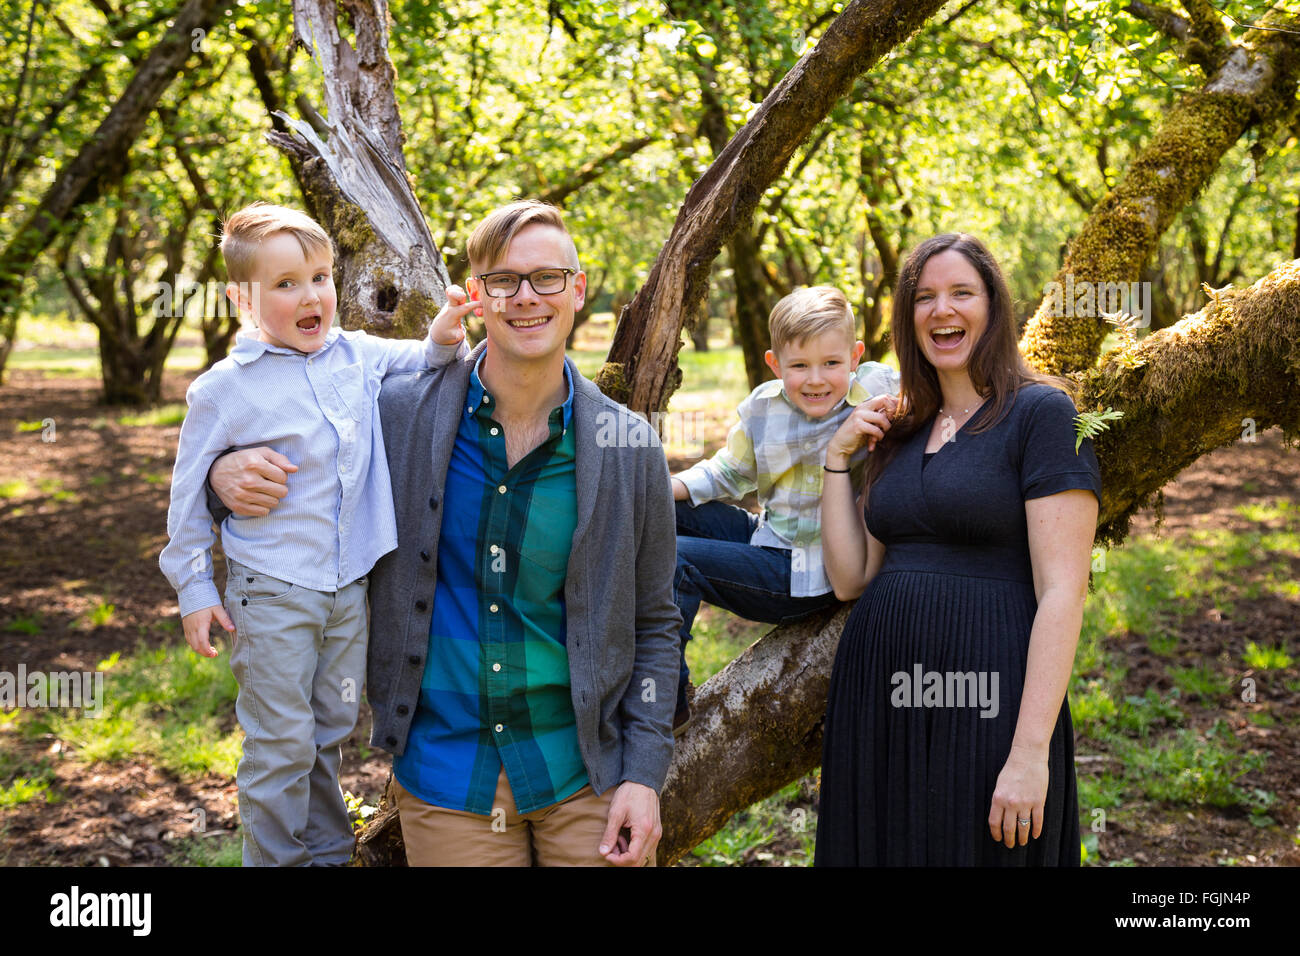 Family of four outdoors in a natural setting with nice light in a lifestyle portrait. - Stock Image